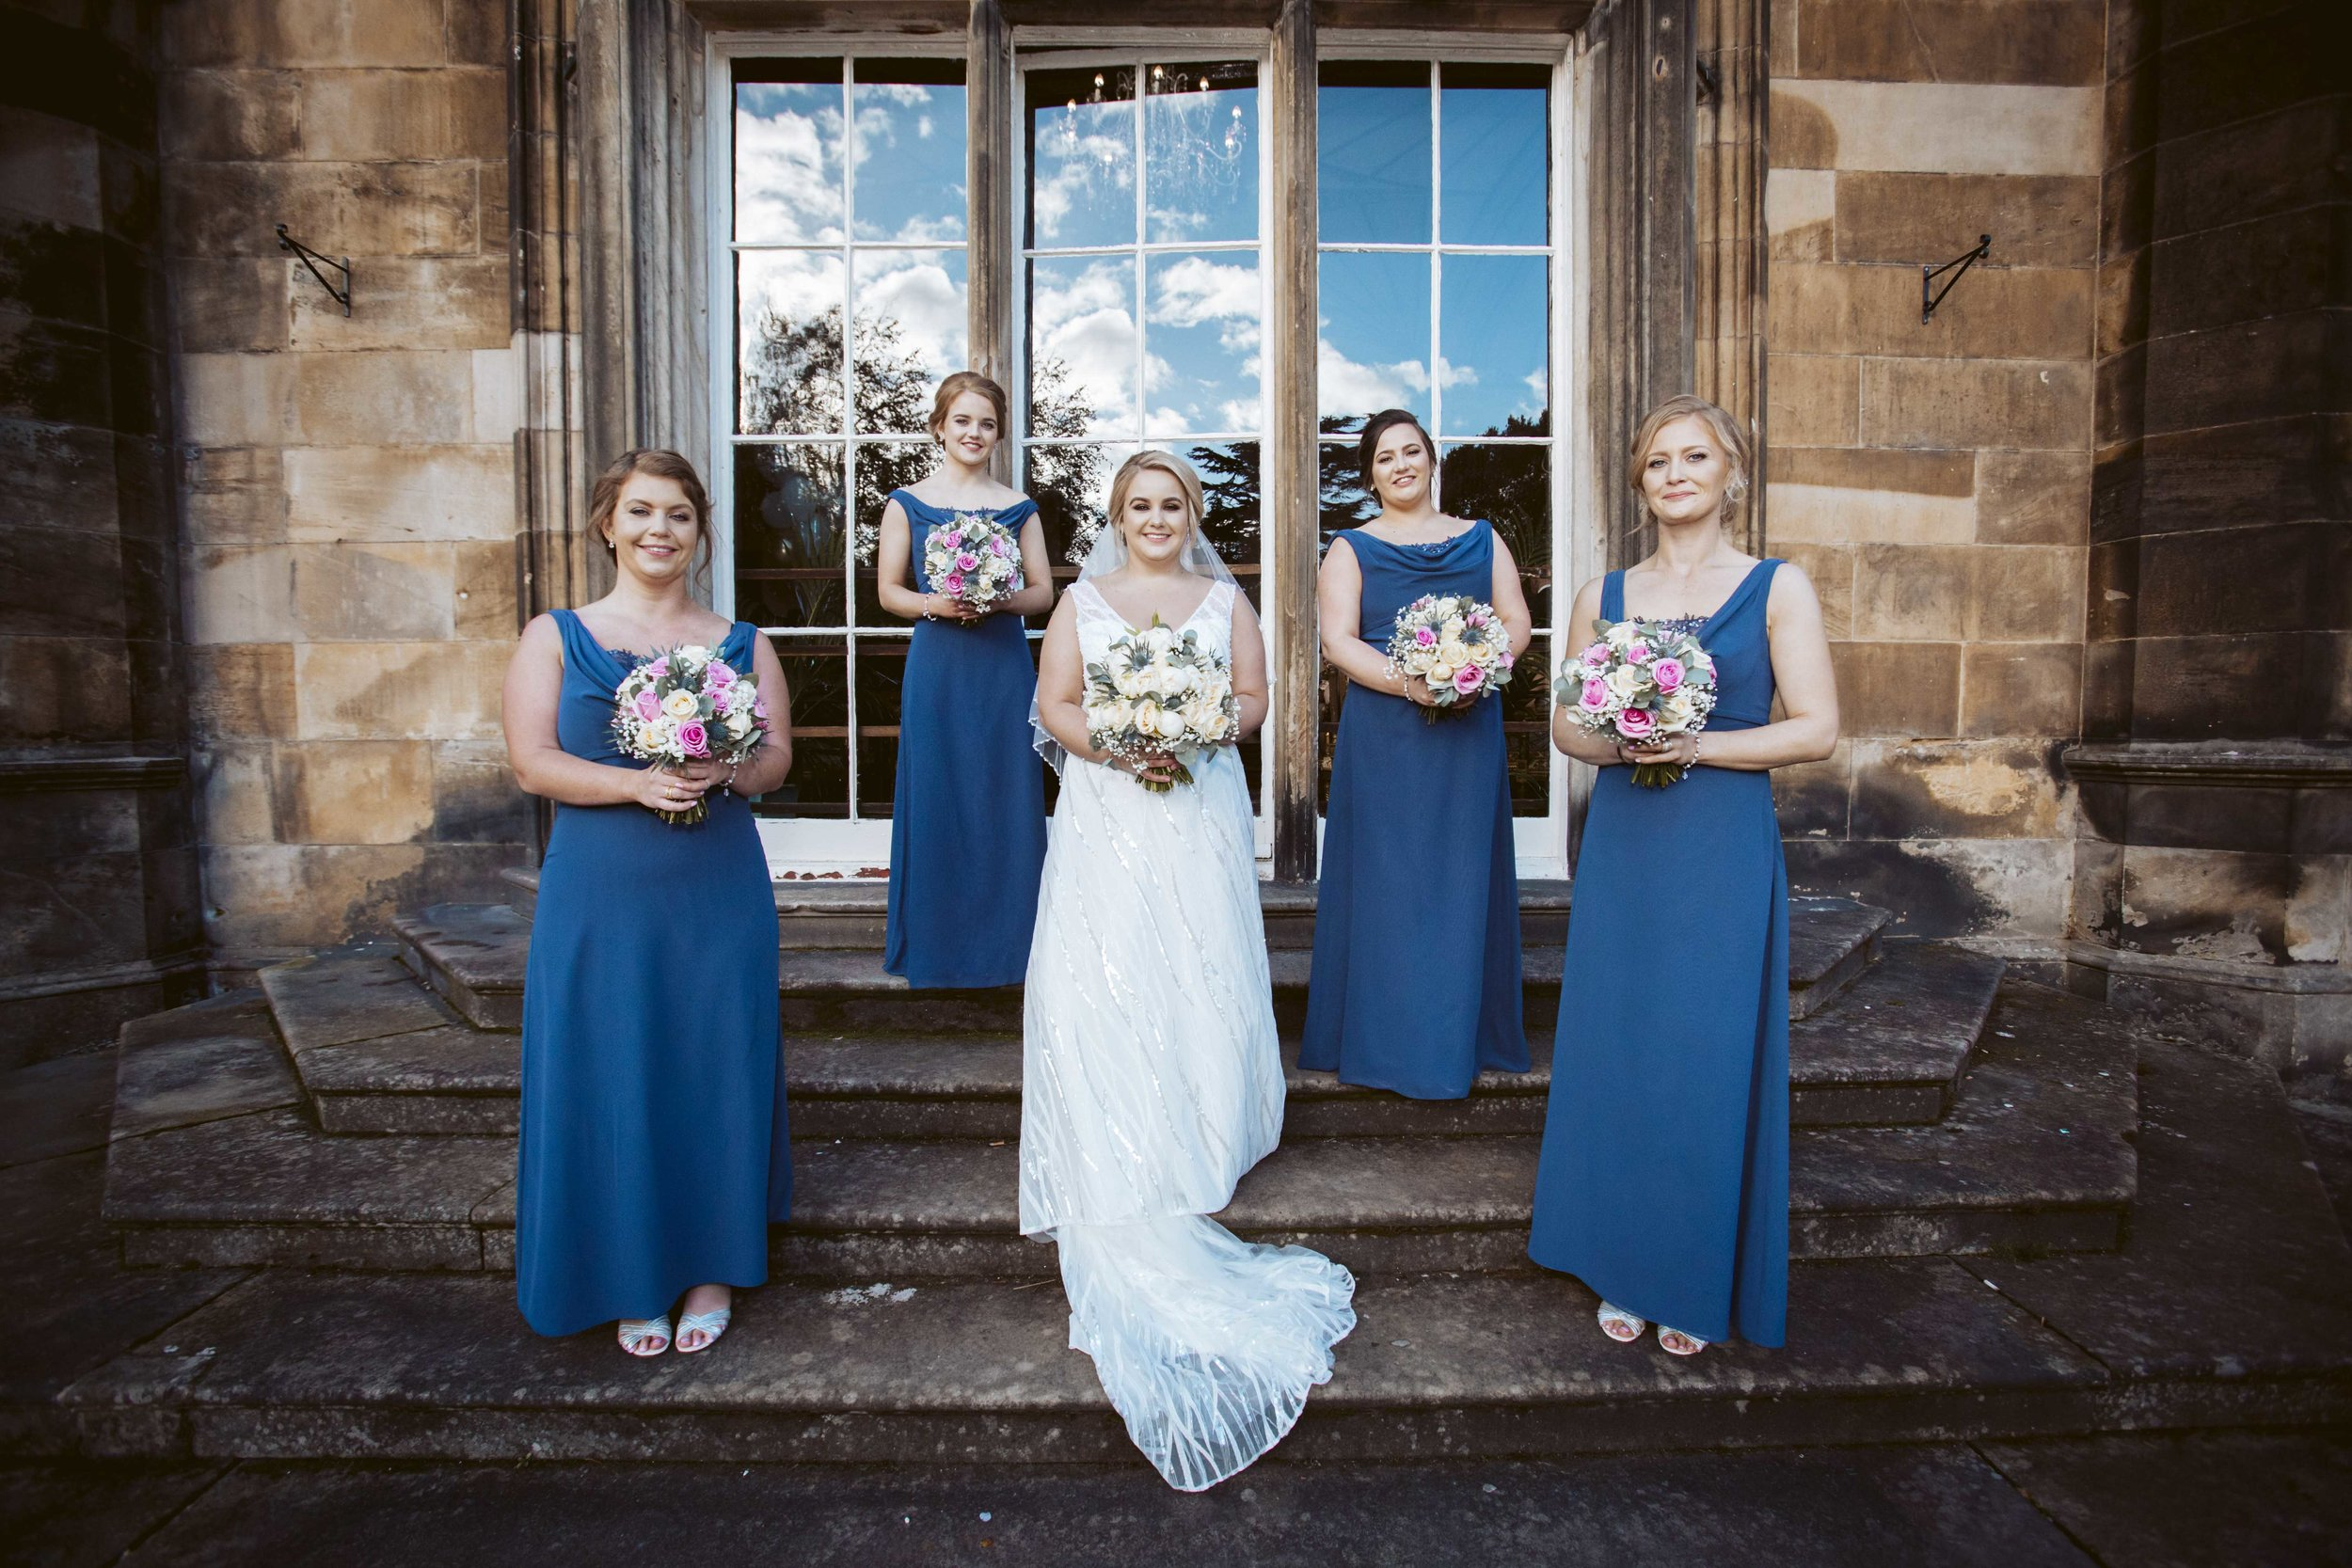 Mar Hall Wedding 2018, Haminsh & Emma McEwan 40.JPG